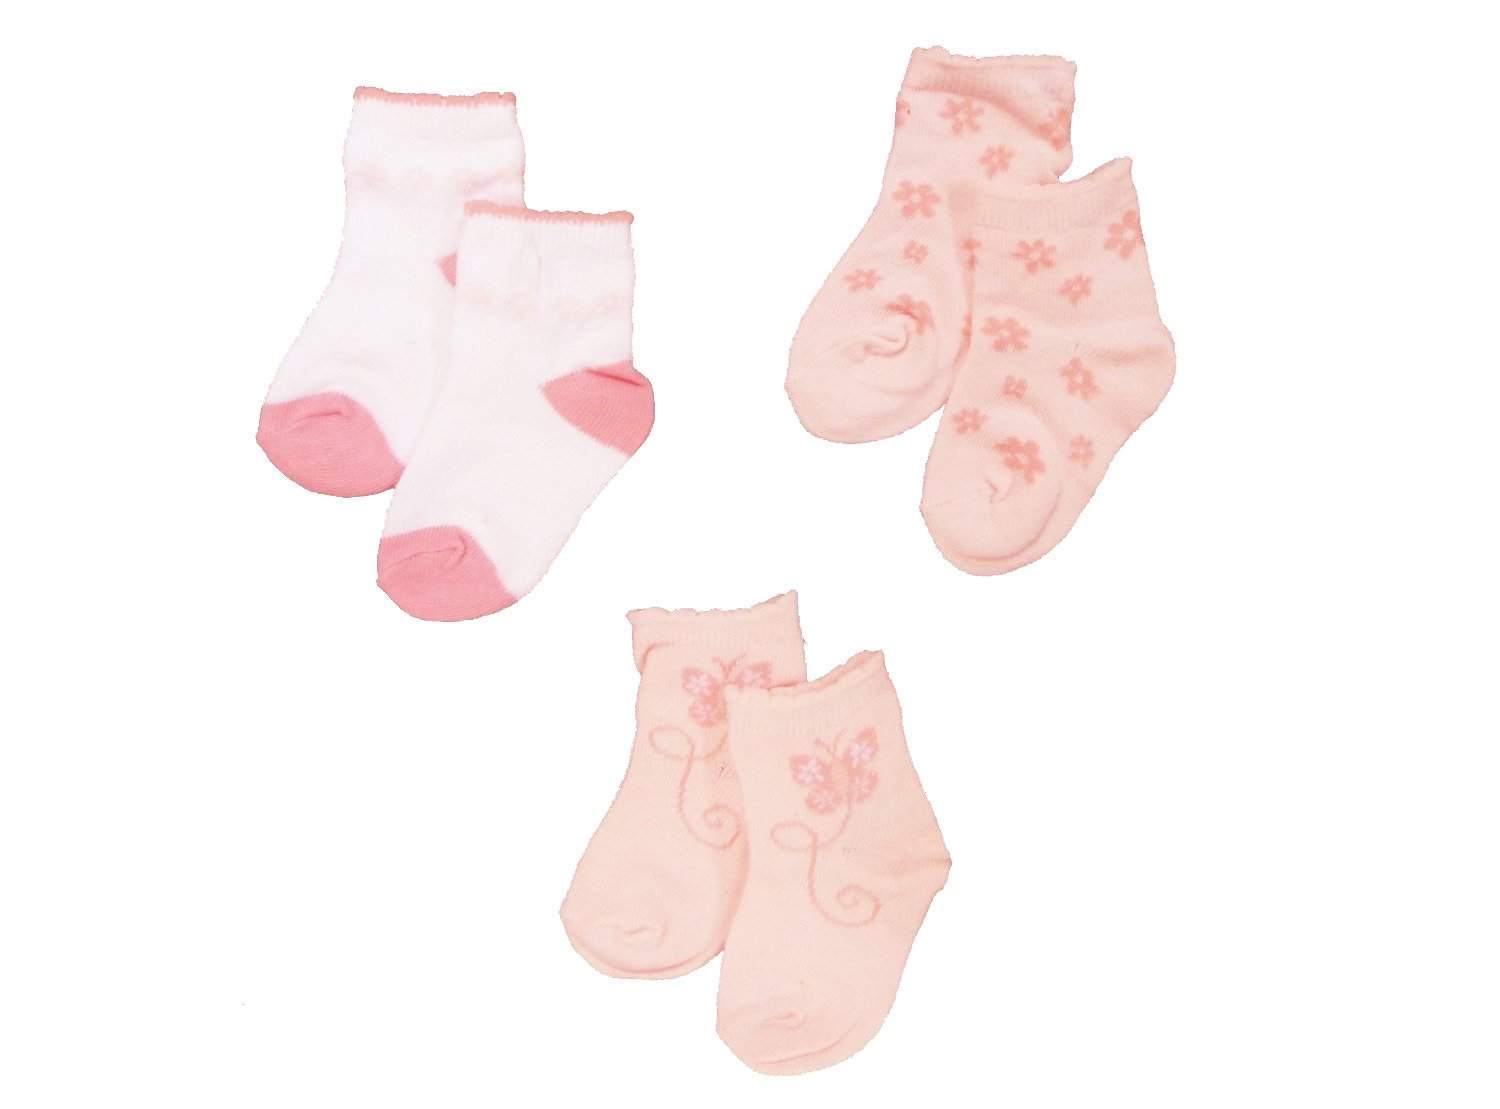 Baby Girls Cute Socks 3 Pairs - Pink Butterfly & Flowers Design (Newborn (UK Size 0-0)) Baby Best Buys BW 6112 2100